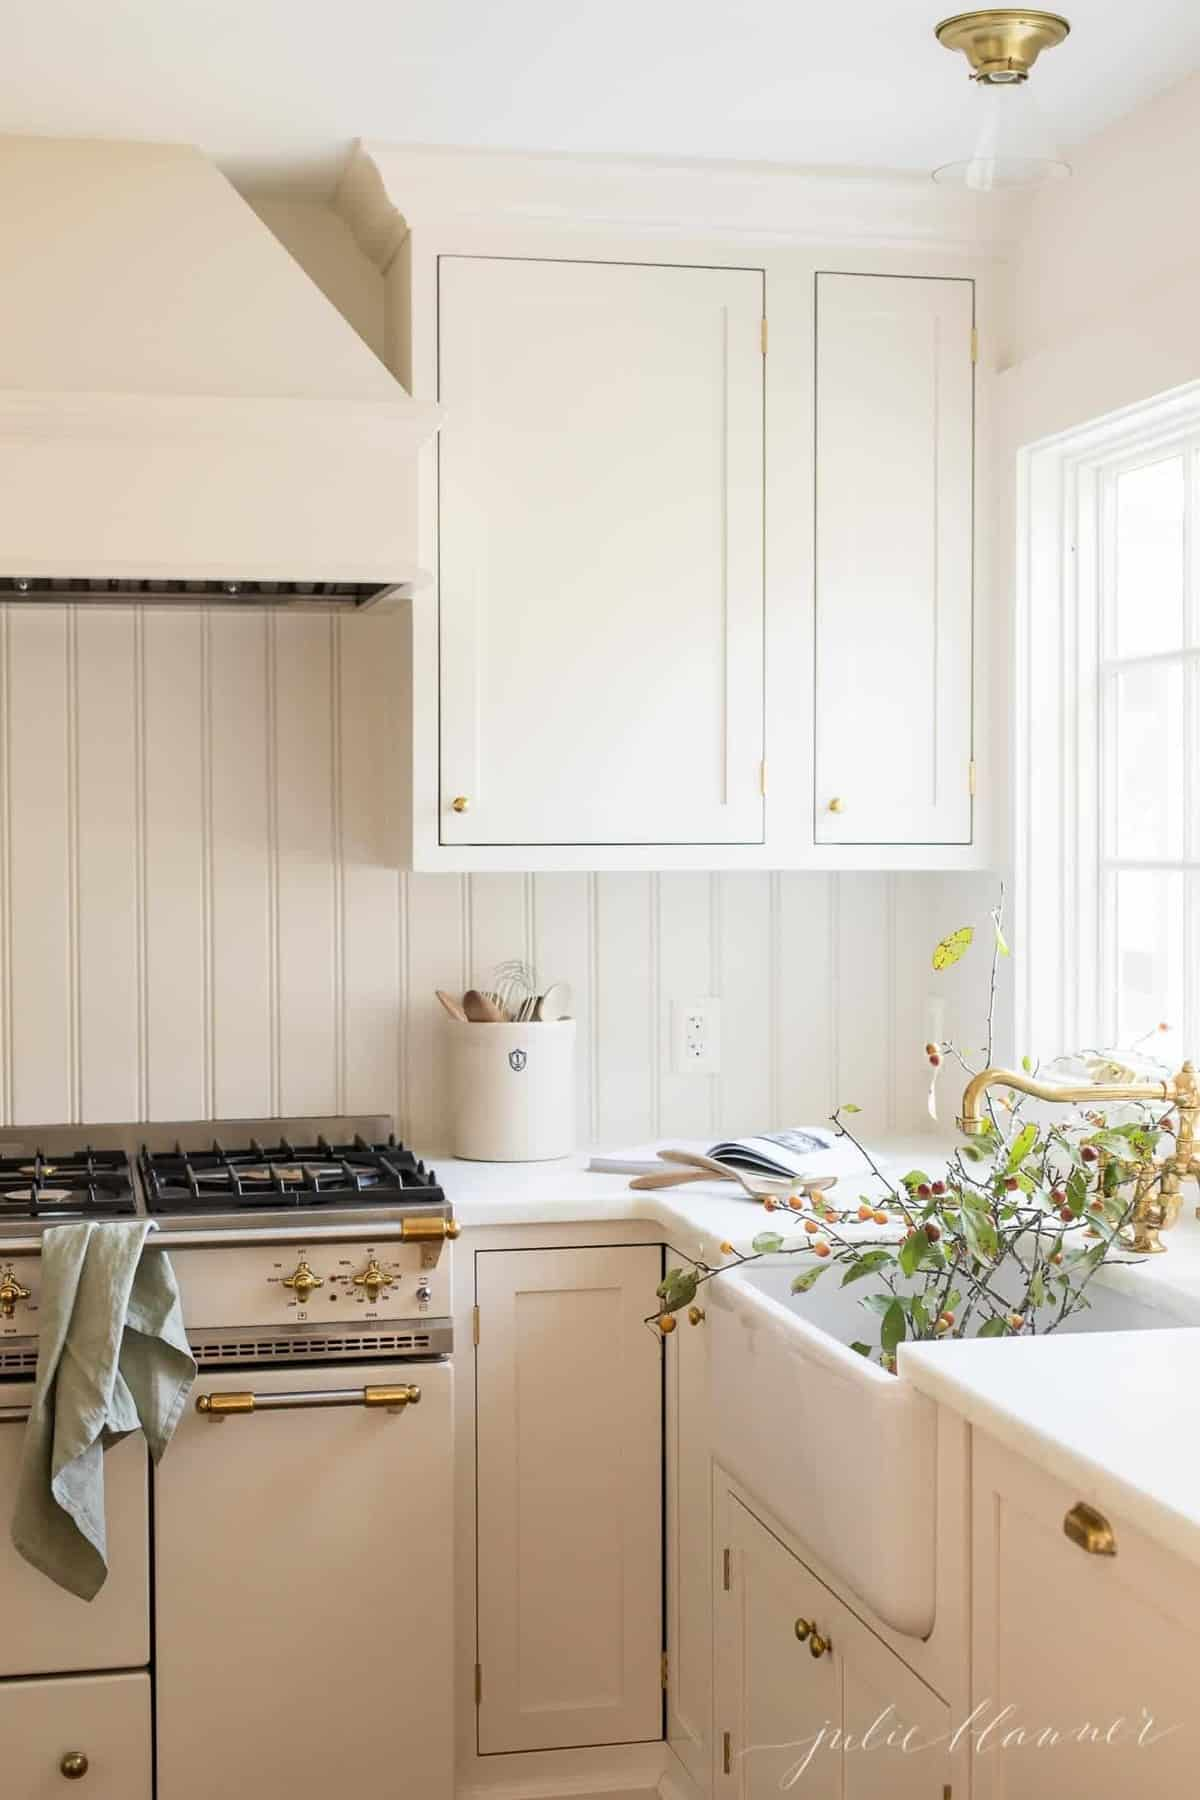 A cream kitchen with a white farmhouse sink, branches inside for fall decorating.